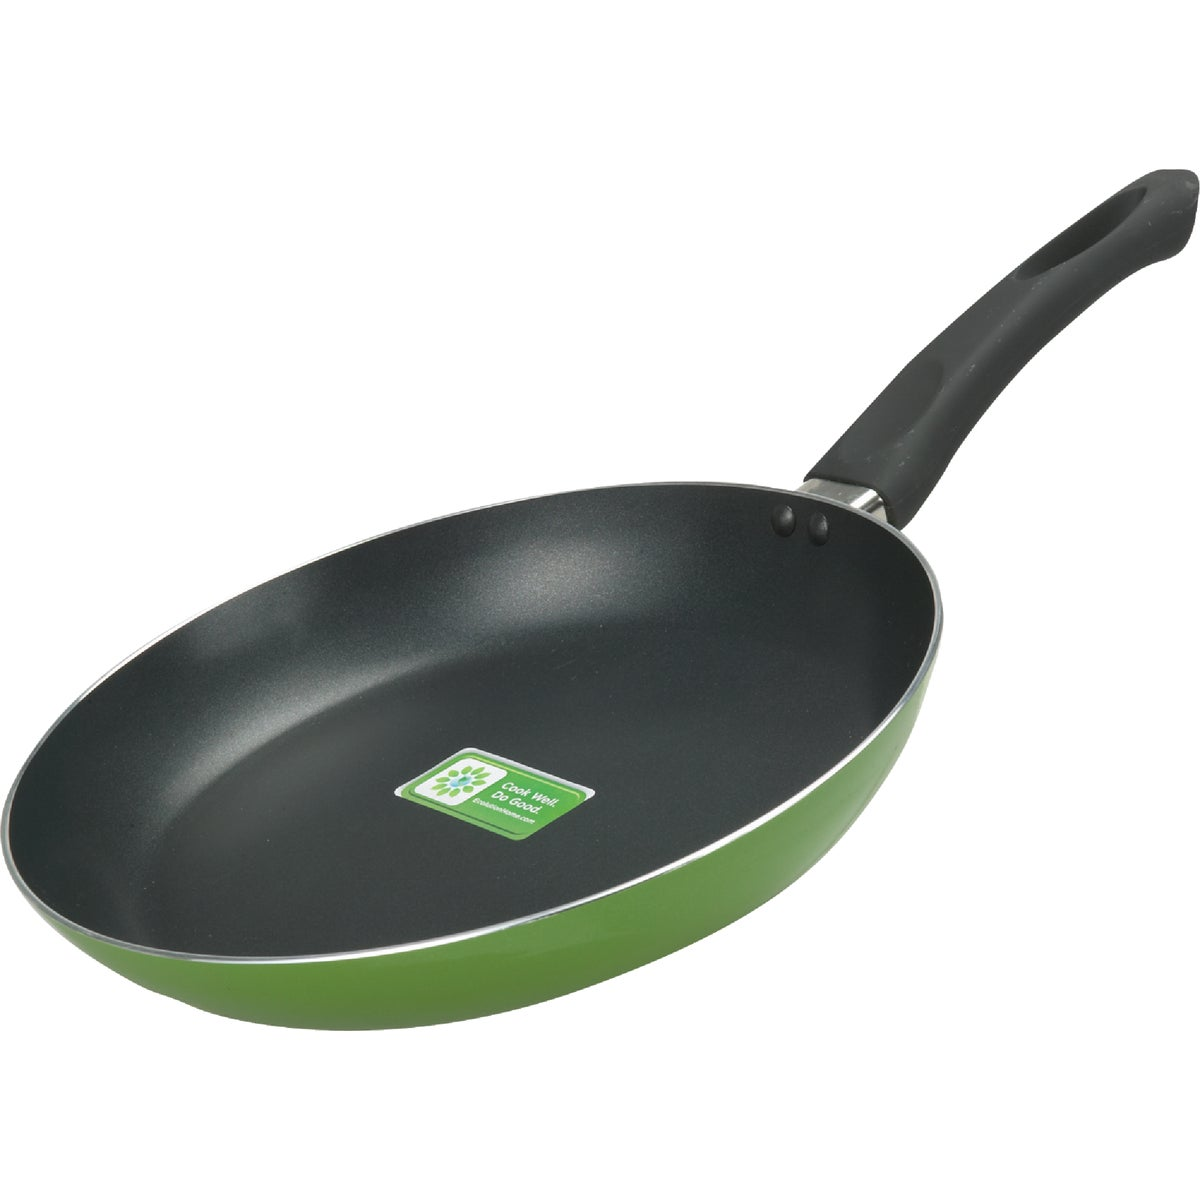 "11"" FRY PAN - EEGN-5128 by Epoca Inc"